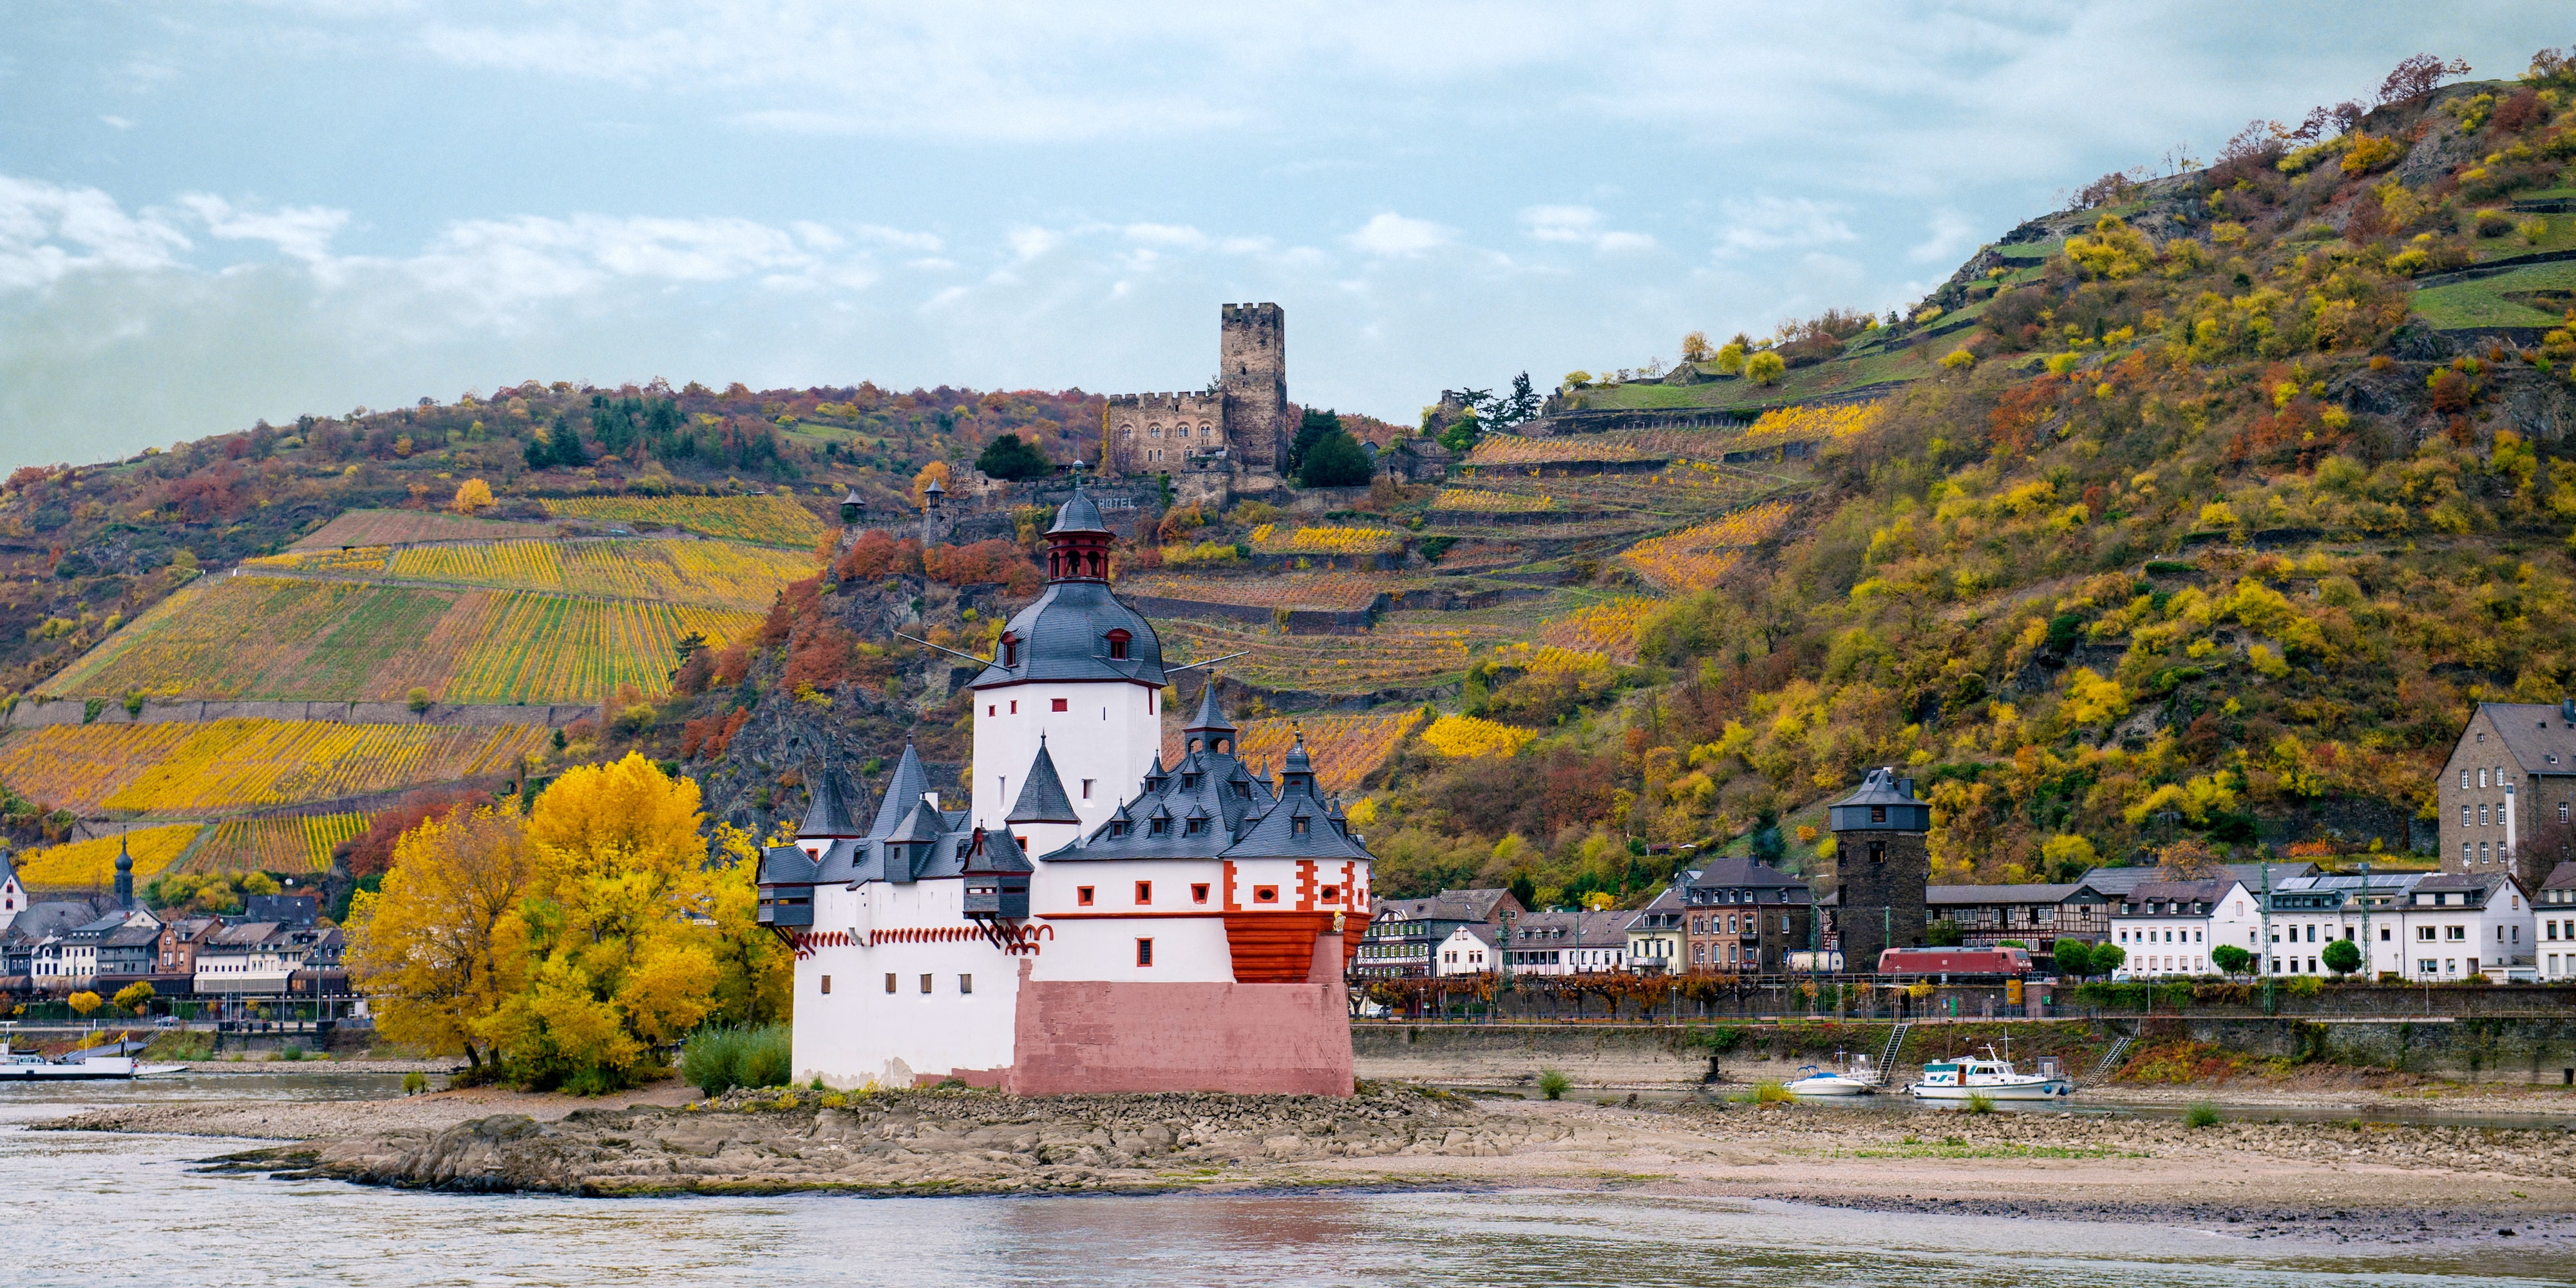 A castle on a hill and another castle near a river, with the buildings of a town lining its shore